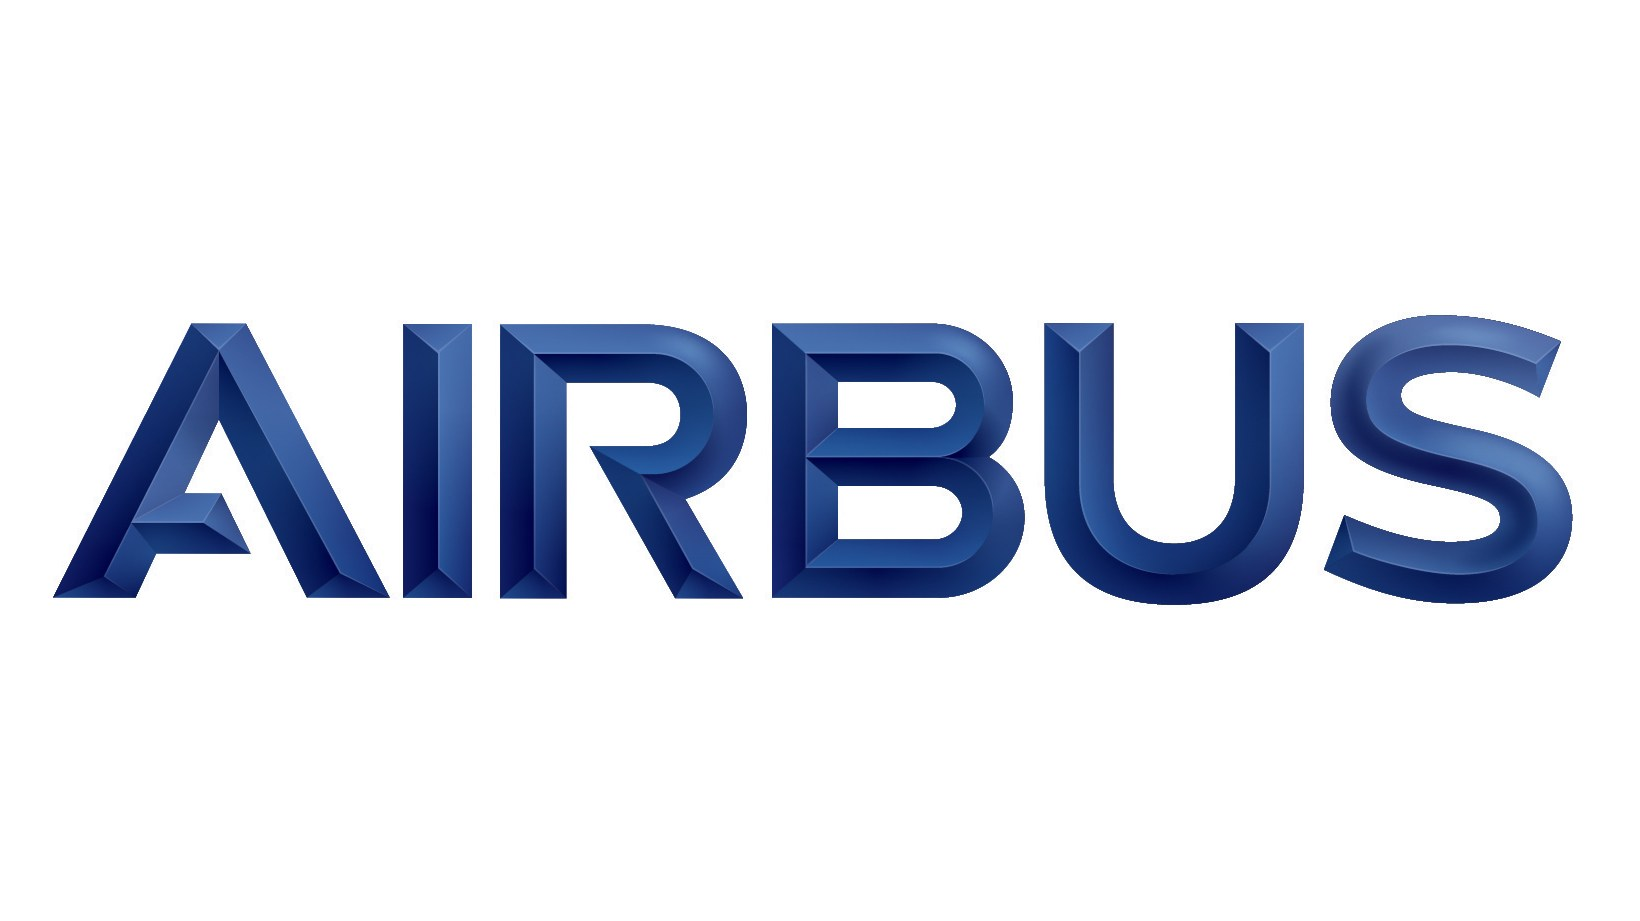 Airbus takes off with ASE methodologies